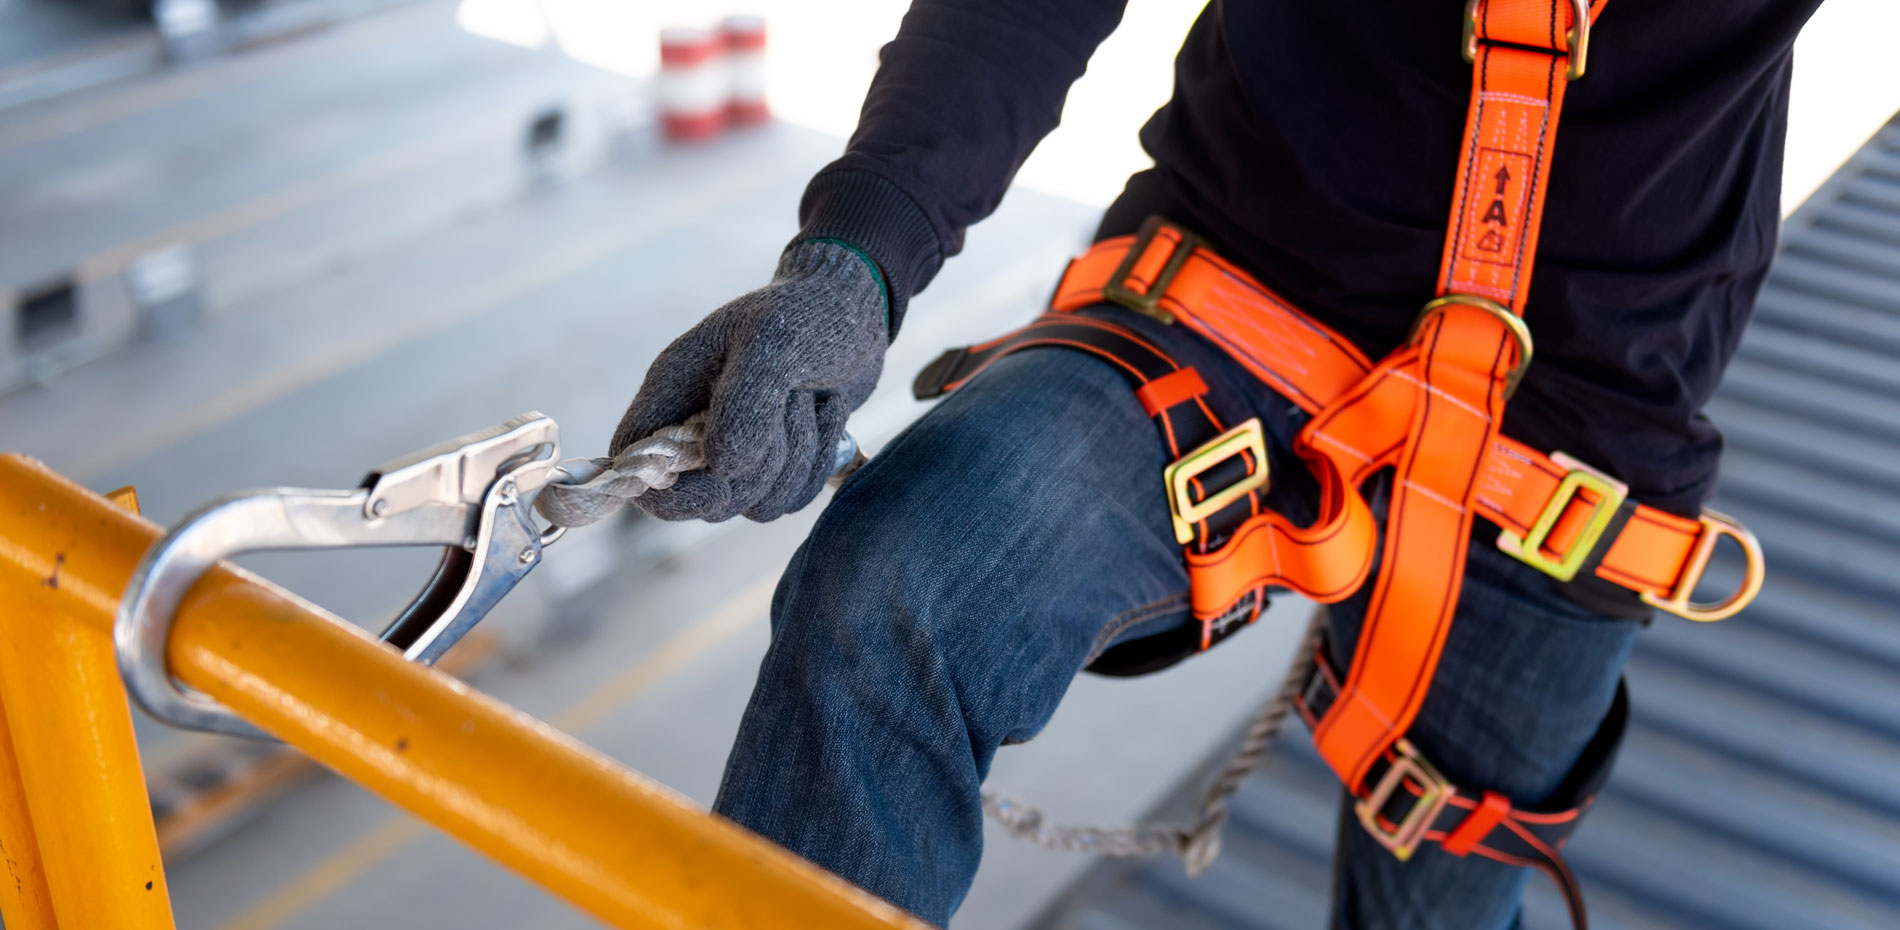 Construction worker using safety harness and safety line on a construction site project